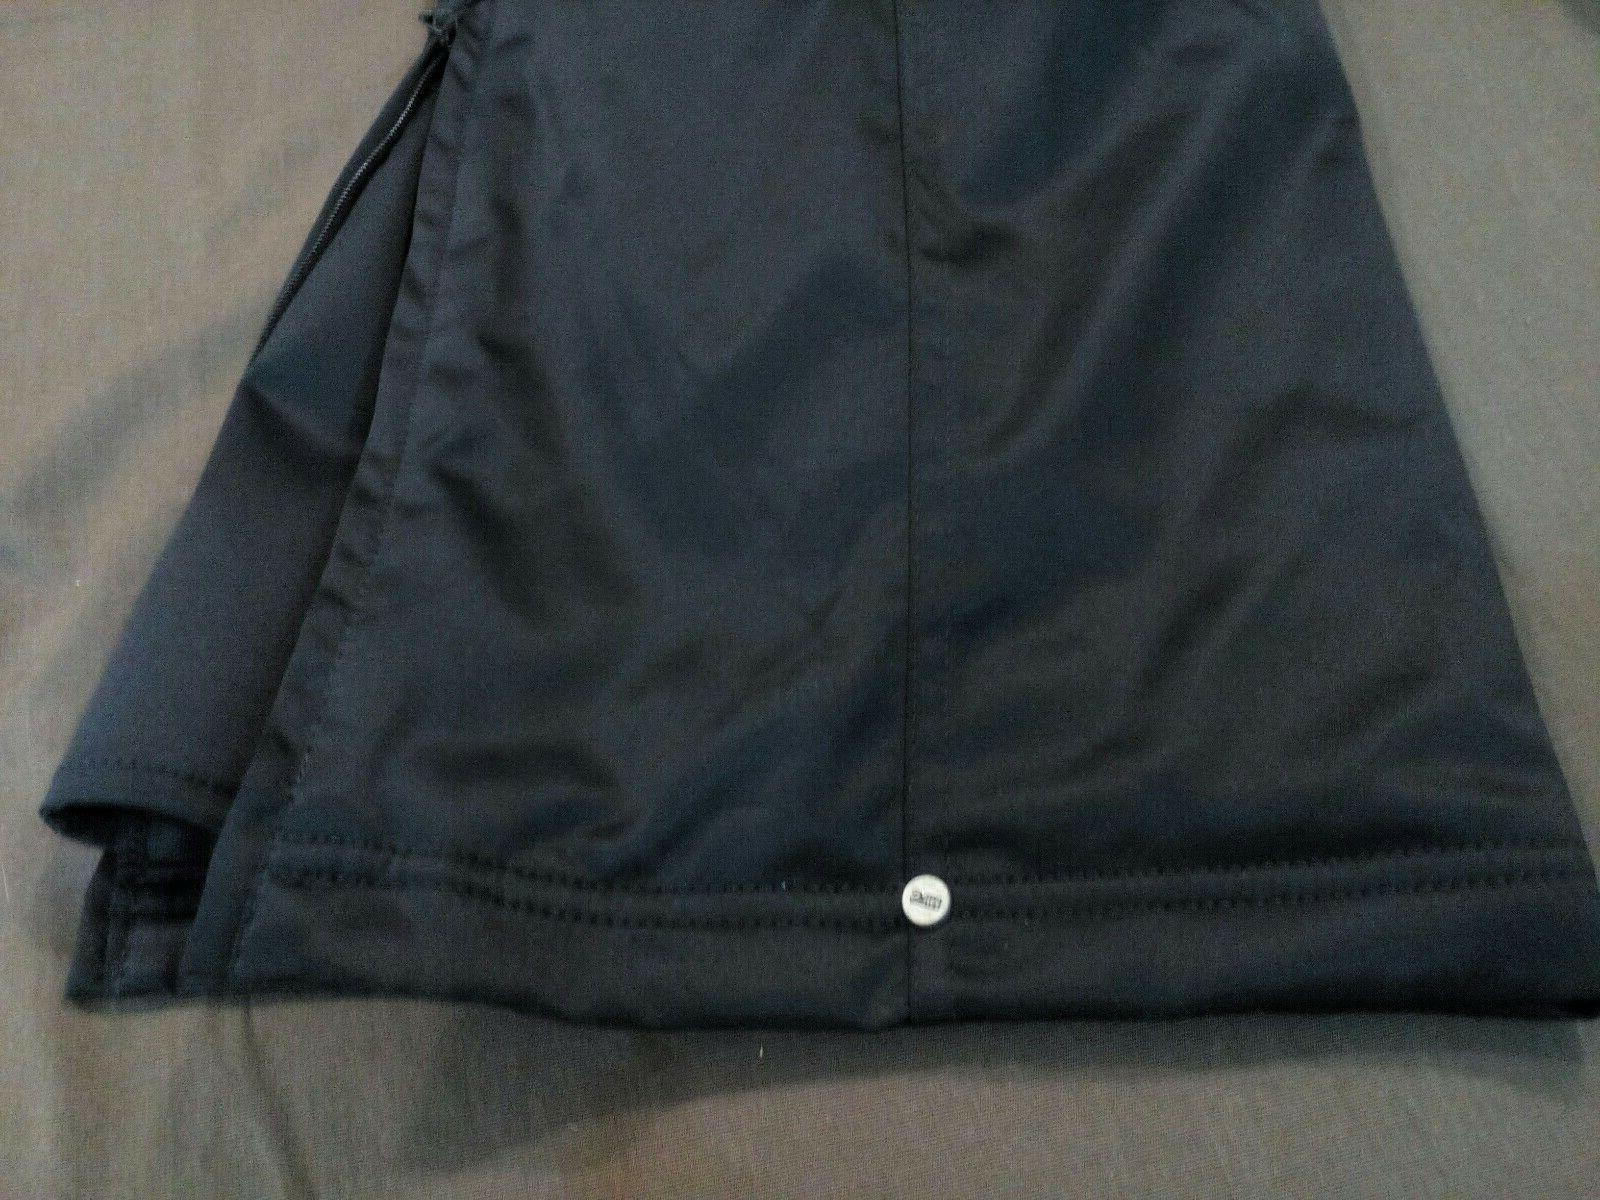 NILS Pant Black MSRP $210